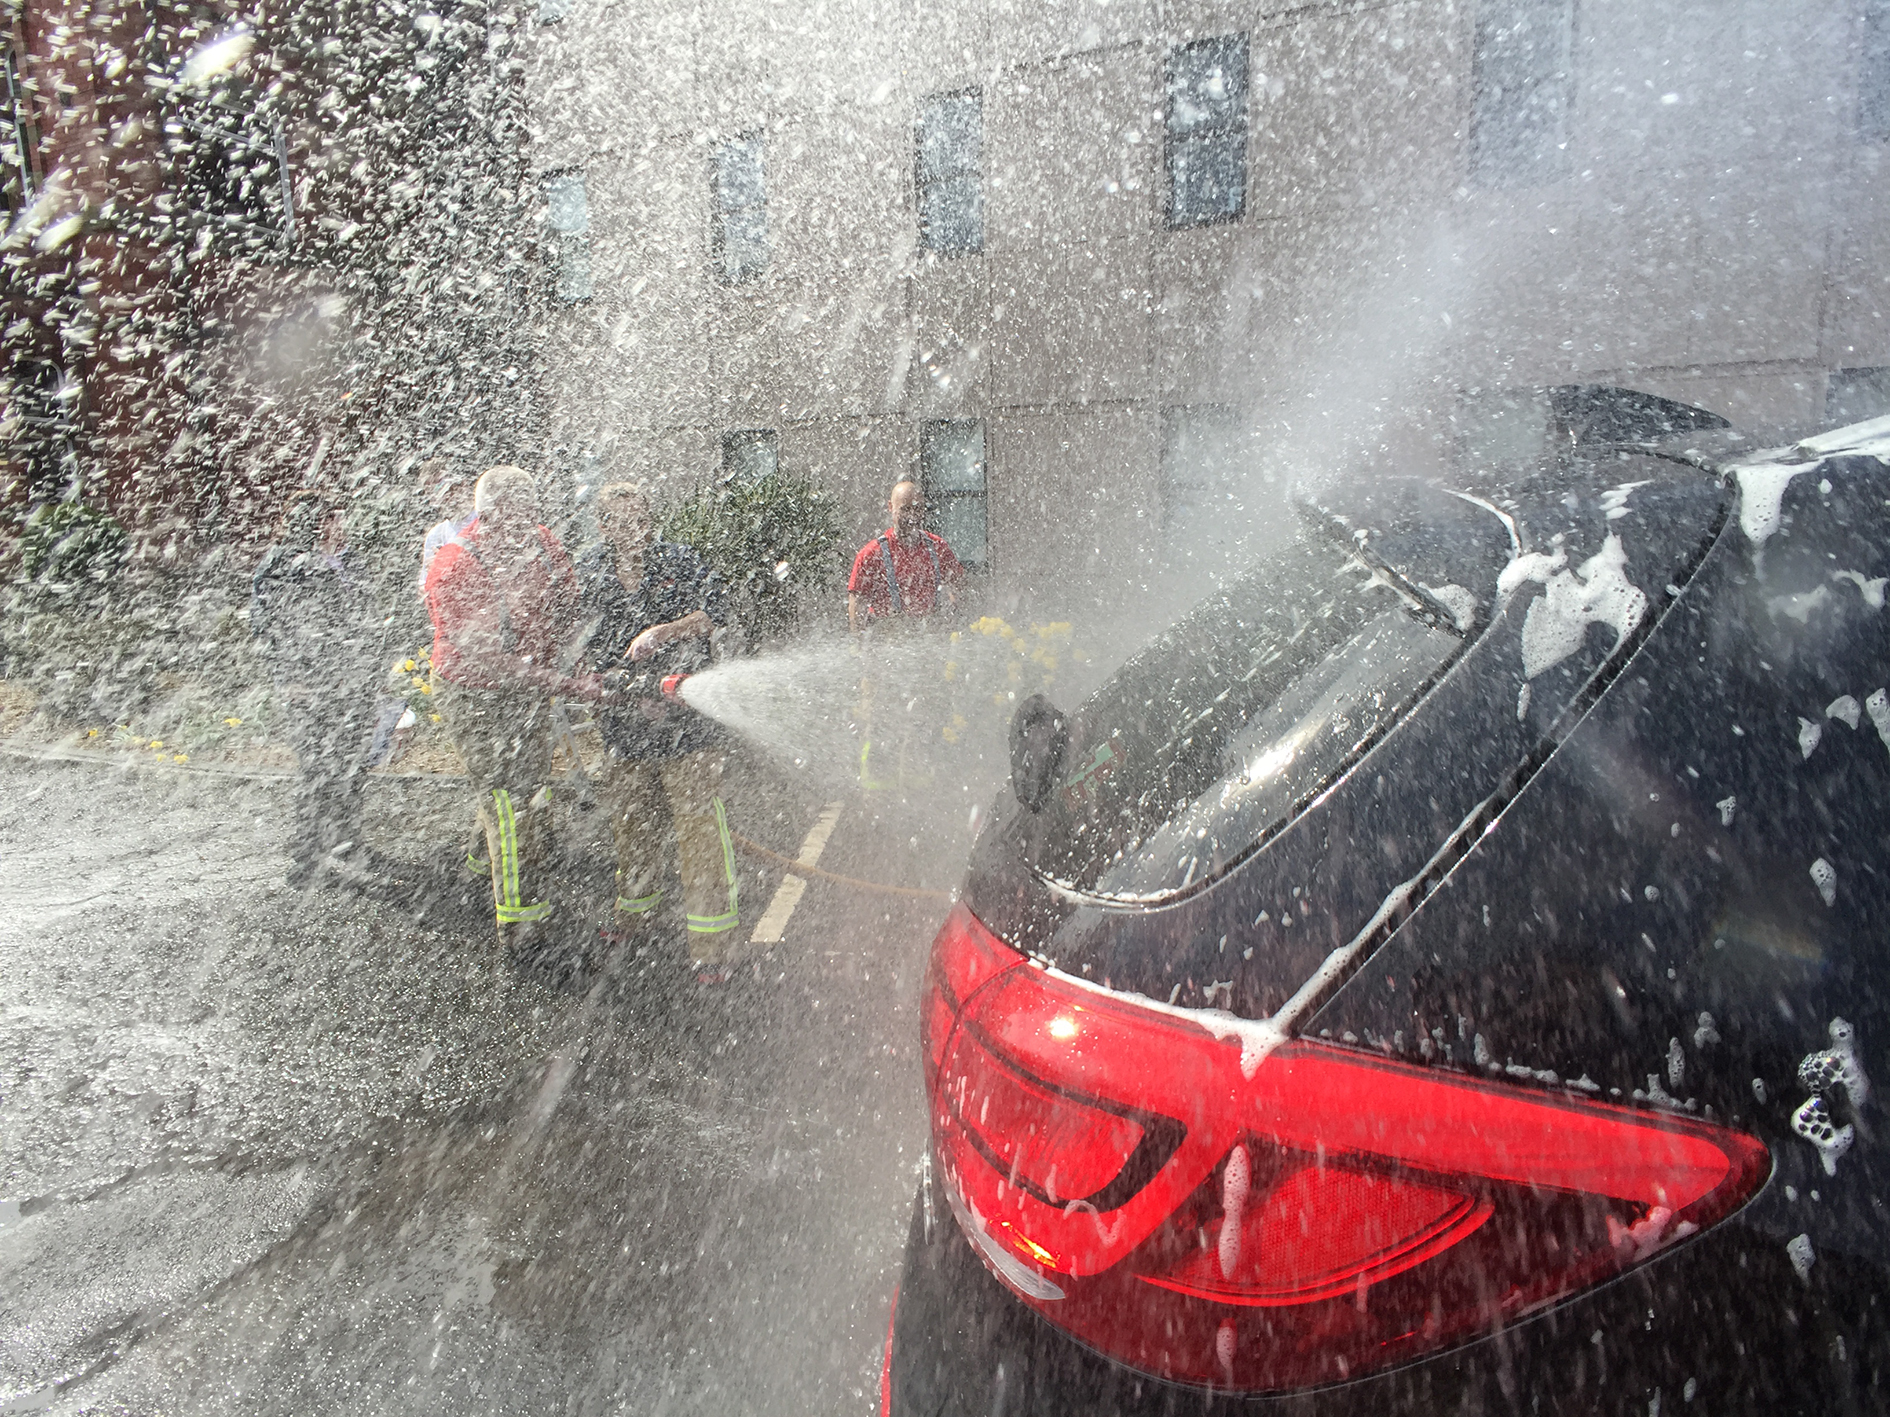 Firefighters spraying soap suds of the back of a car. Suds are flying everywhere.